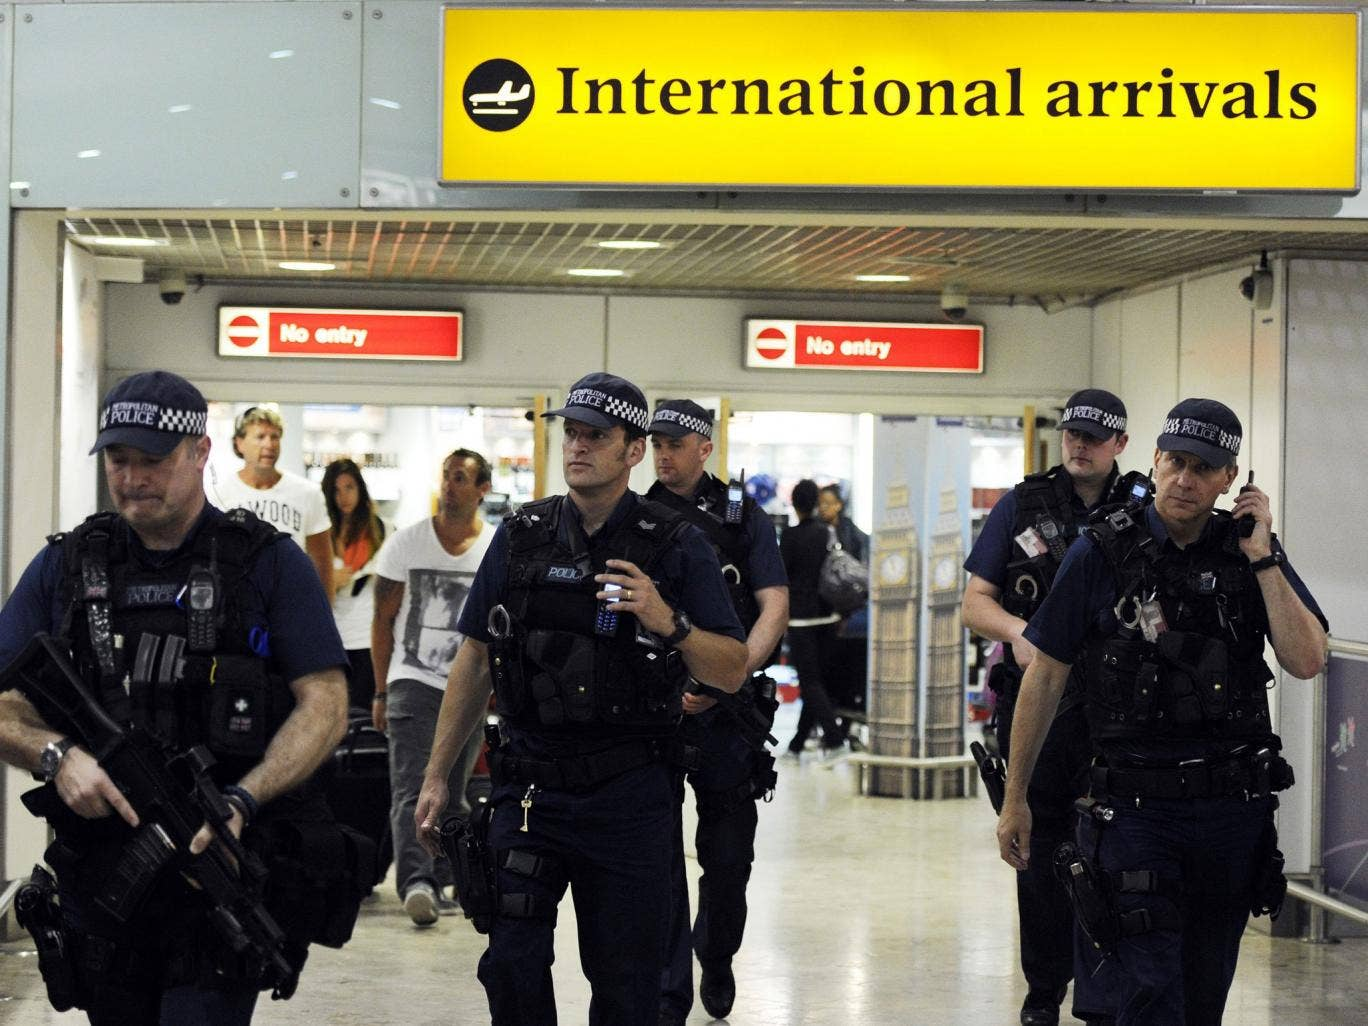 A file picture dated 23 July 2012 shows British police on patrol at Heathrow airport. US security officials are seeking to bolster security at airports abroad with flights to the United States amid new worries about potential bomb plots